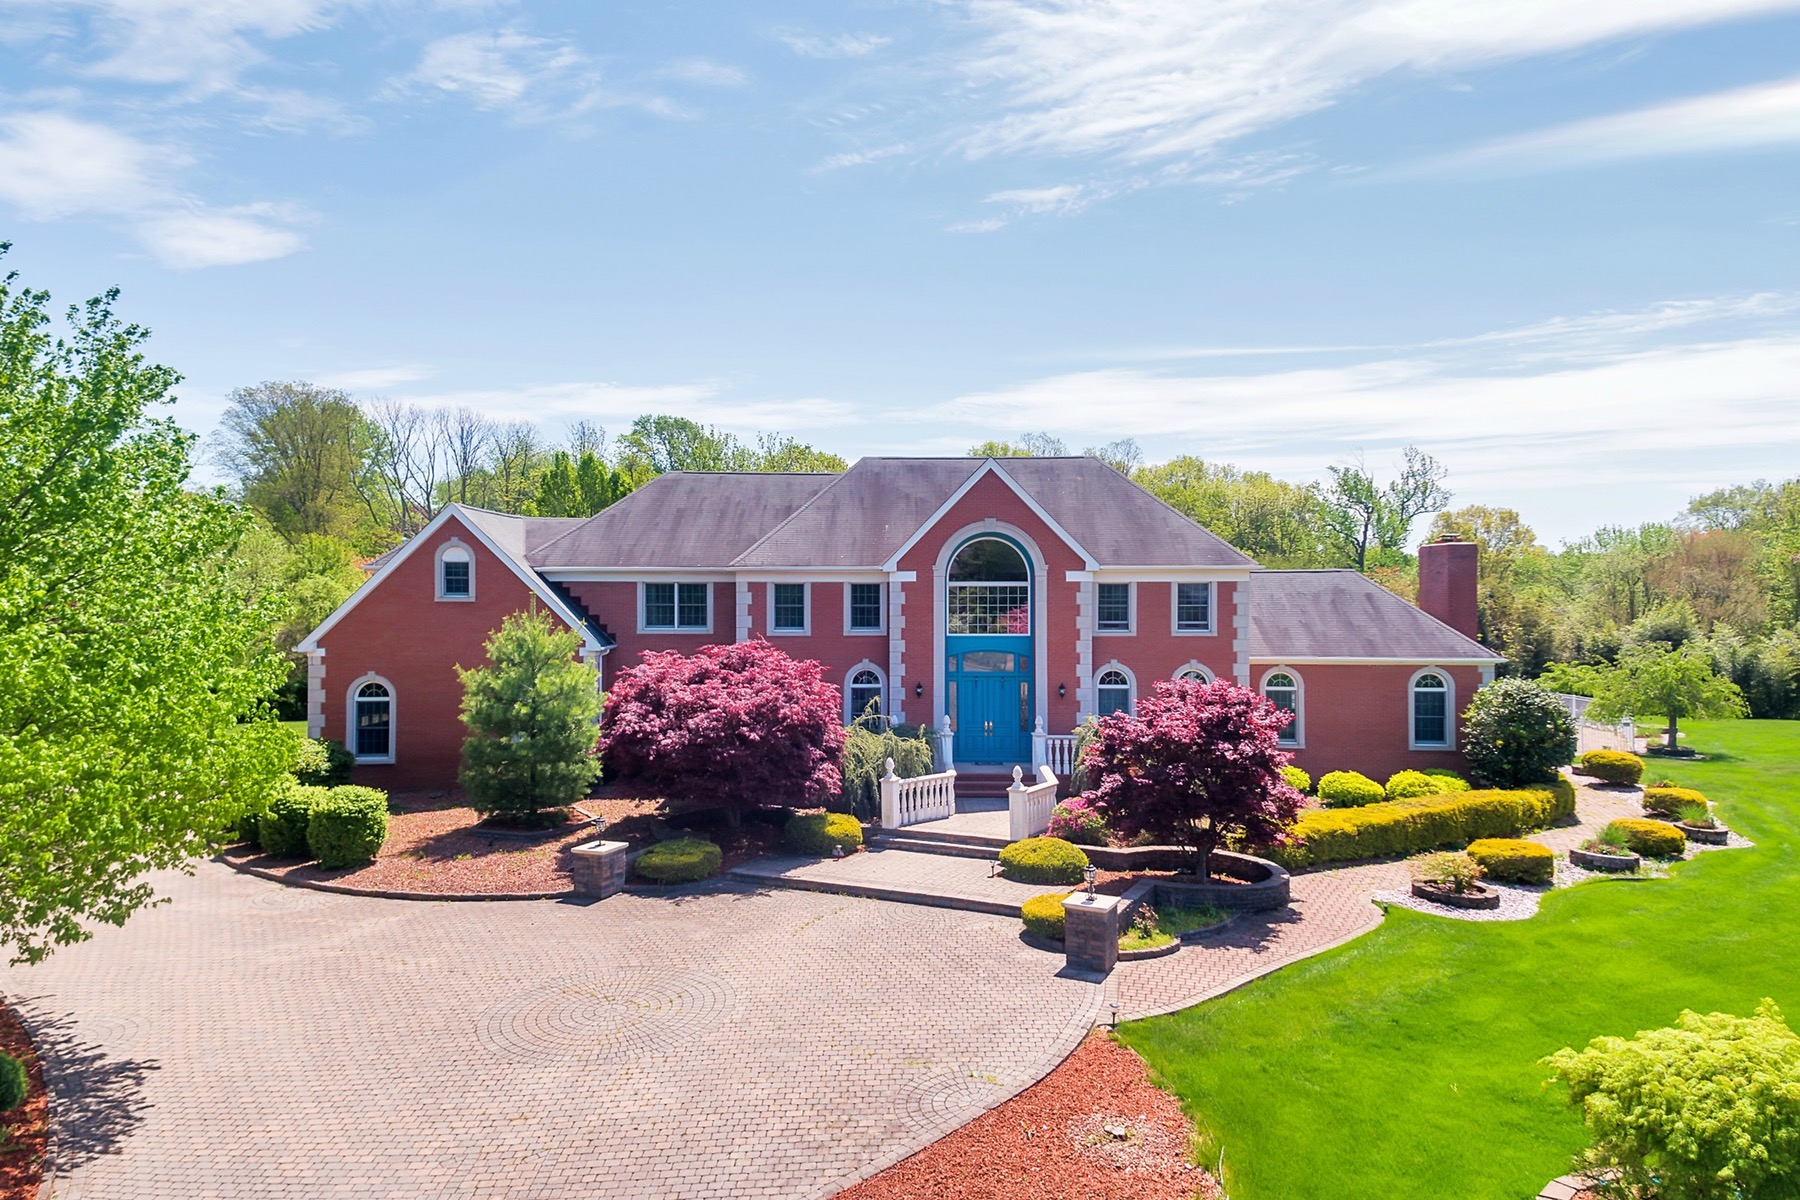 Single Family Home for Sale at Serenity is Yours in Tiberon Estates! 11 Monterey Court Holmdel, New Jersey 07733 United States